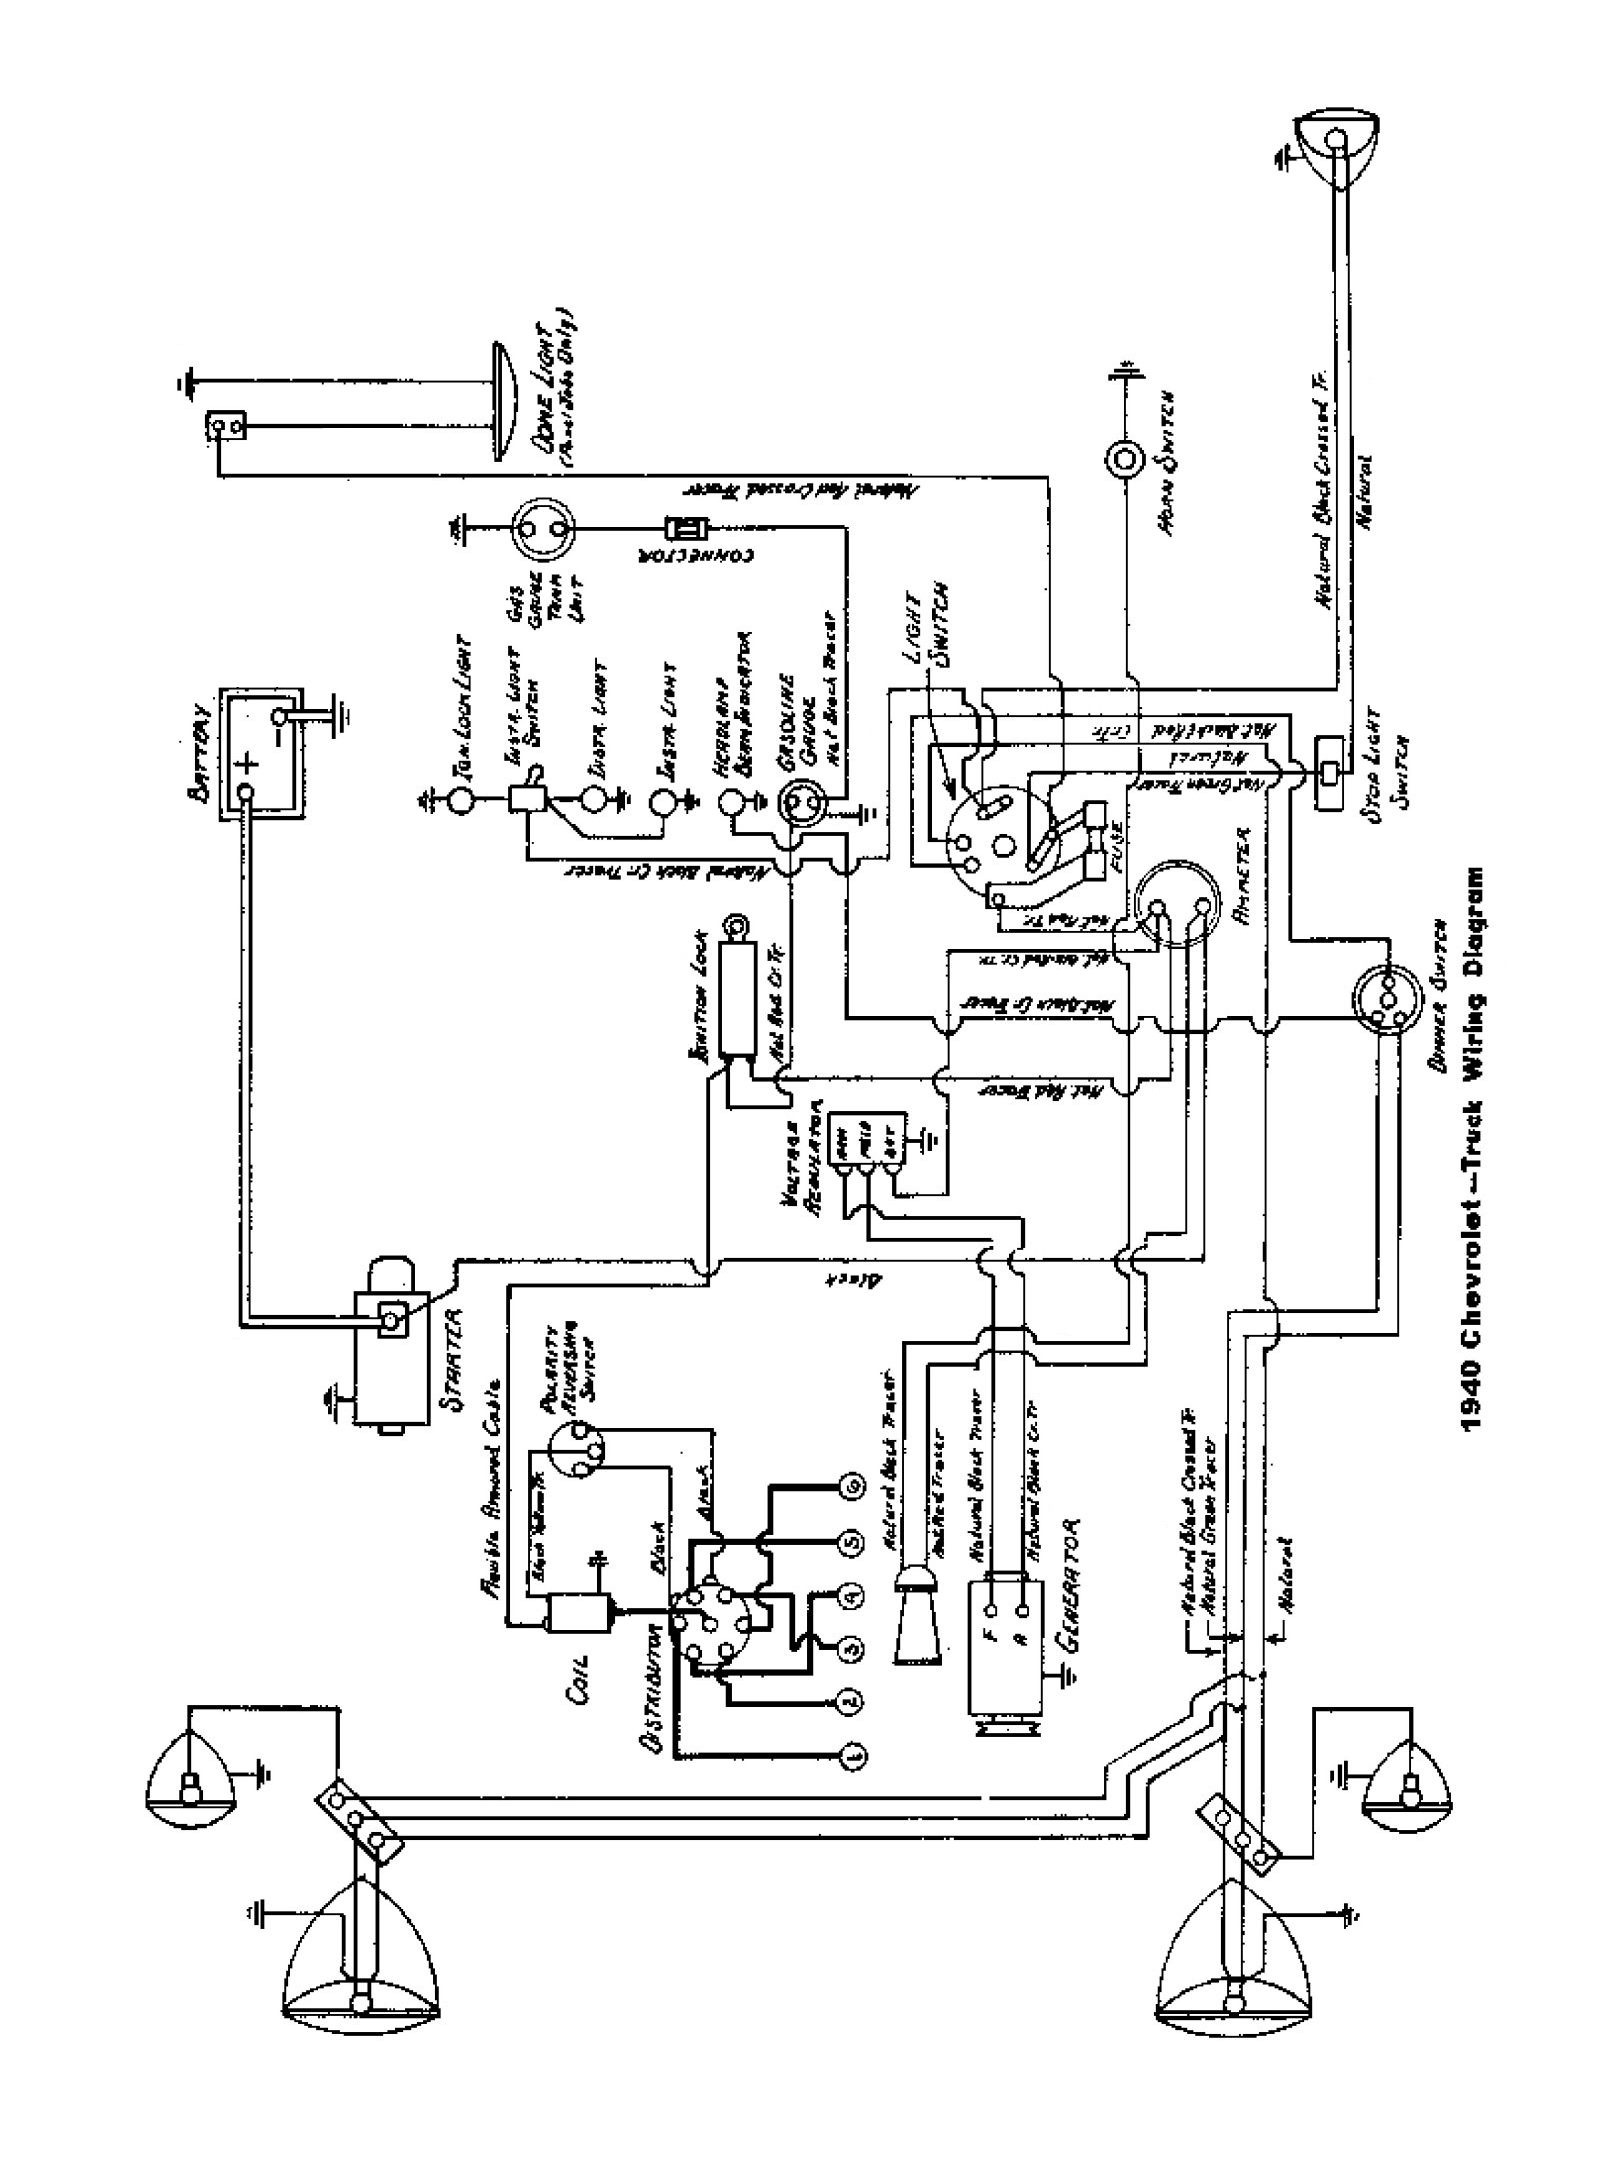 chevy wiring diagrams 57 Chevy Instrument Cluster Wiring Diagram 57 chevy wiring diagram 57 Chevy Truck Column Wiring Diagram 65 Bel Air Wire Diagram 57 Chevy Gas Gauge